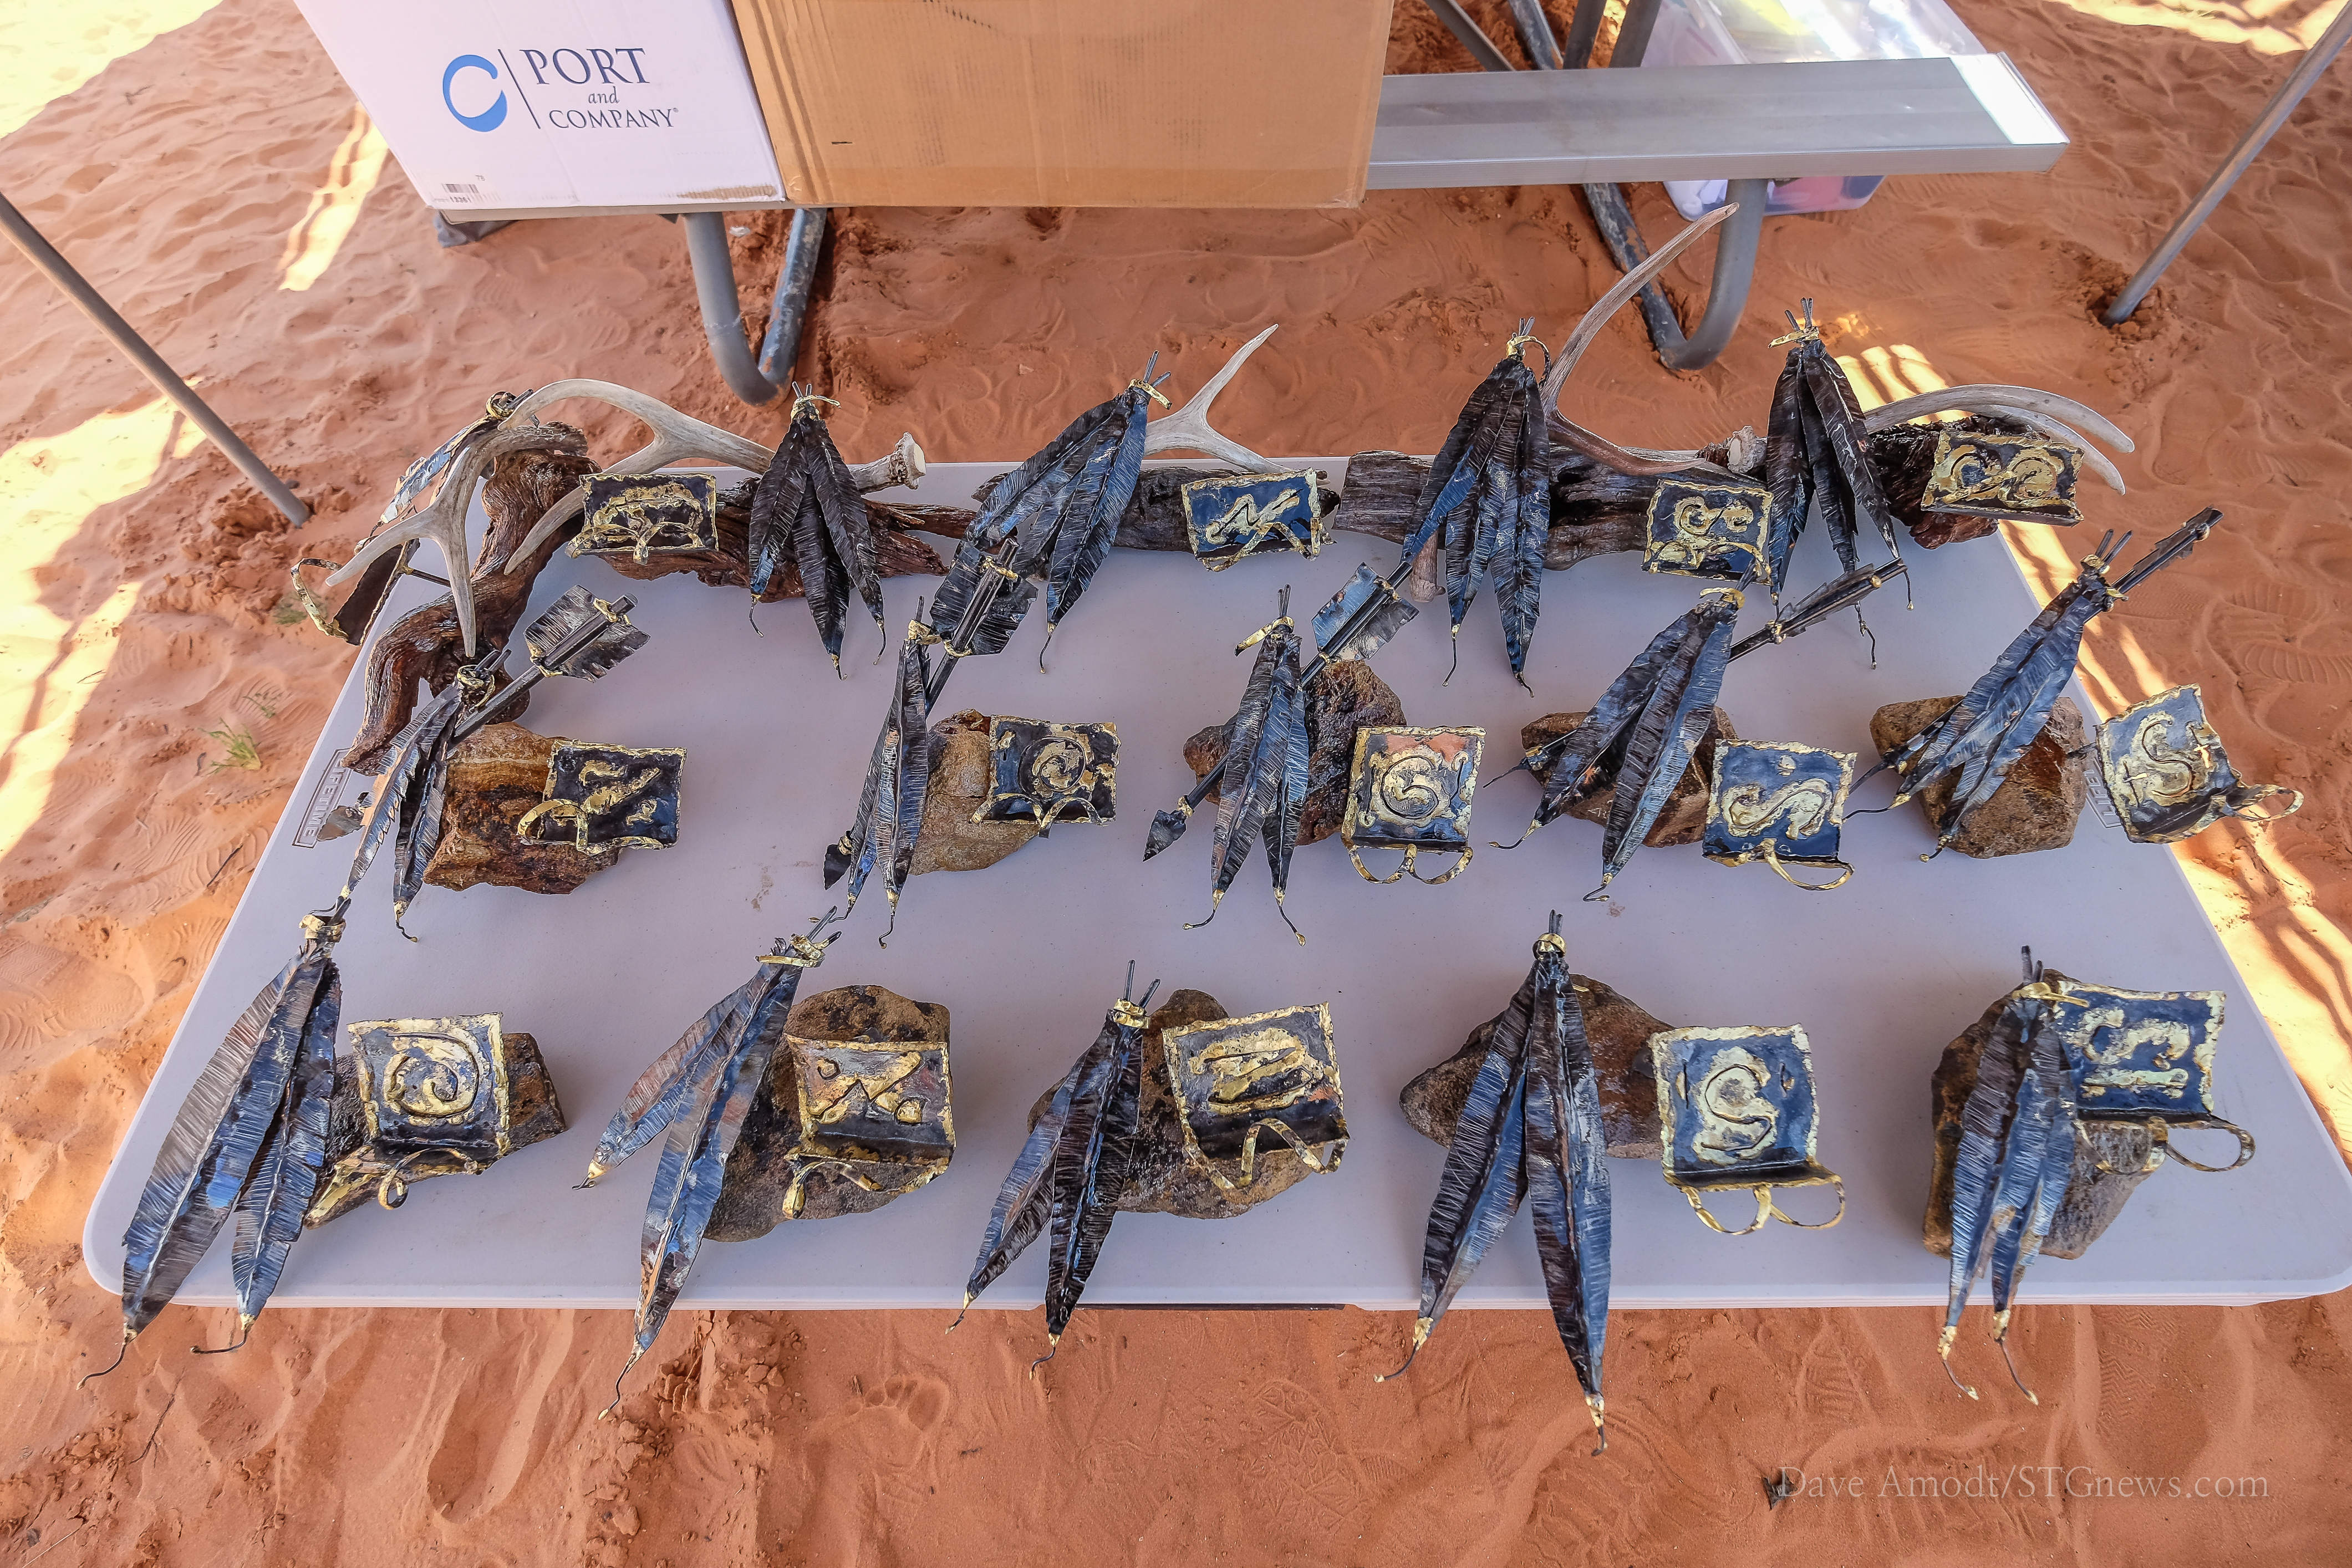 Trophies in wait for winners in the Third Annual Sand Hollow Sailing Classic at Sand Hollow Reservoir, Hurricane, Utah, May 17, 2014 | Photo by Dave Amodt, St. George News